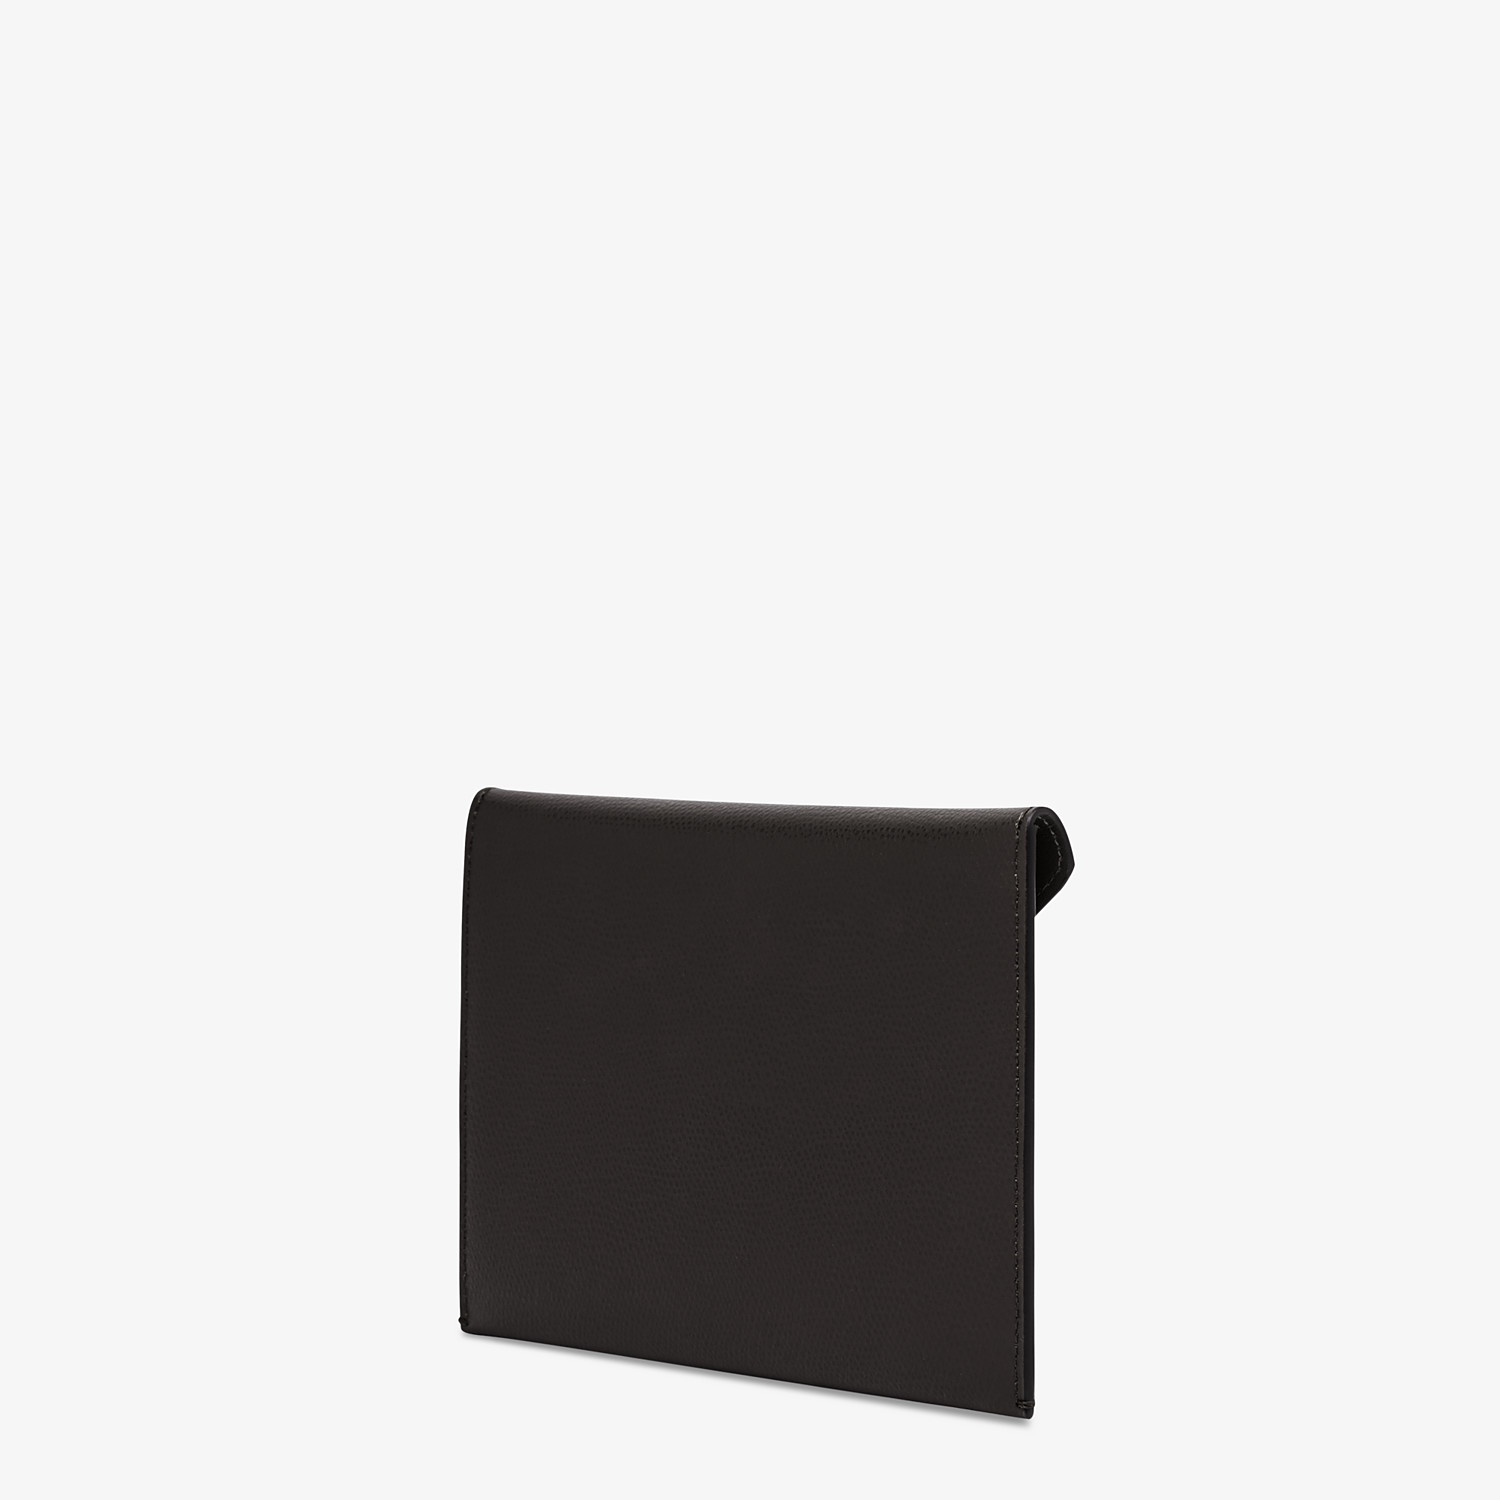 FENDI MEDIUM FLAT POUCH - Black leather pouch - view 2 detail